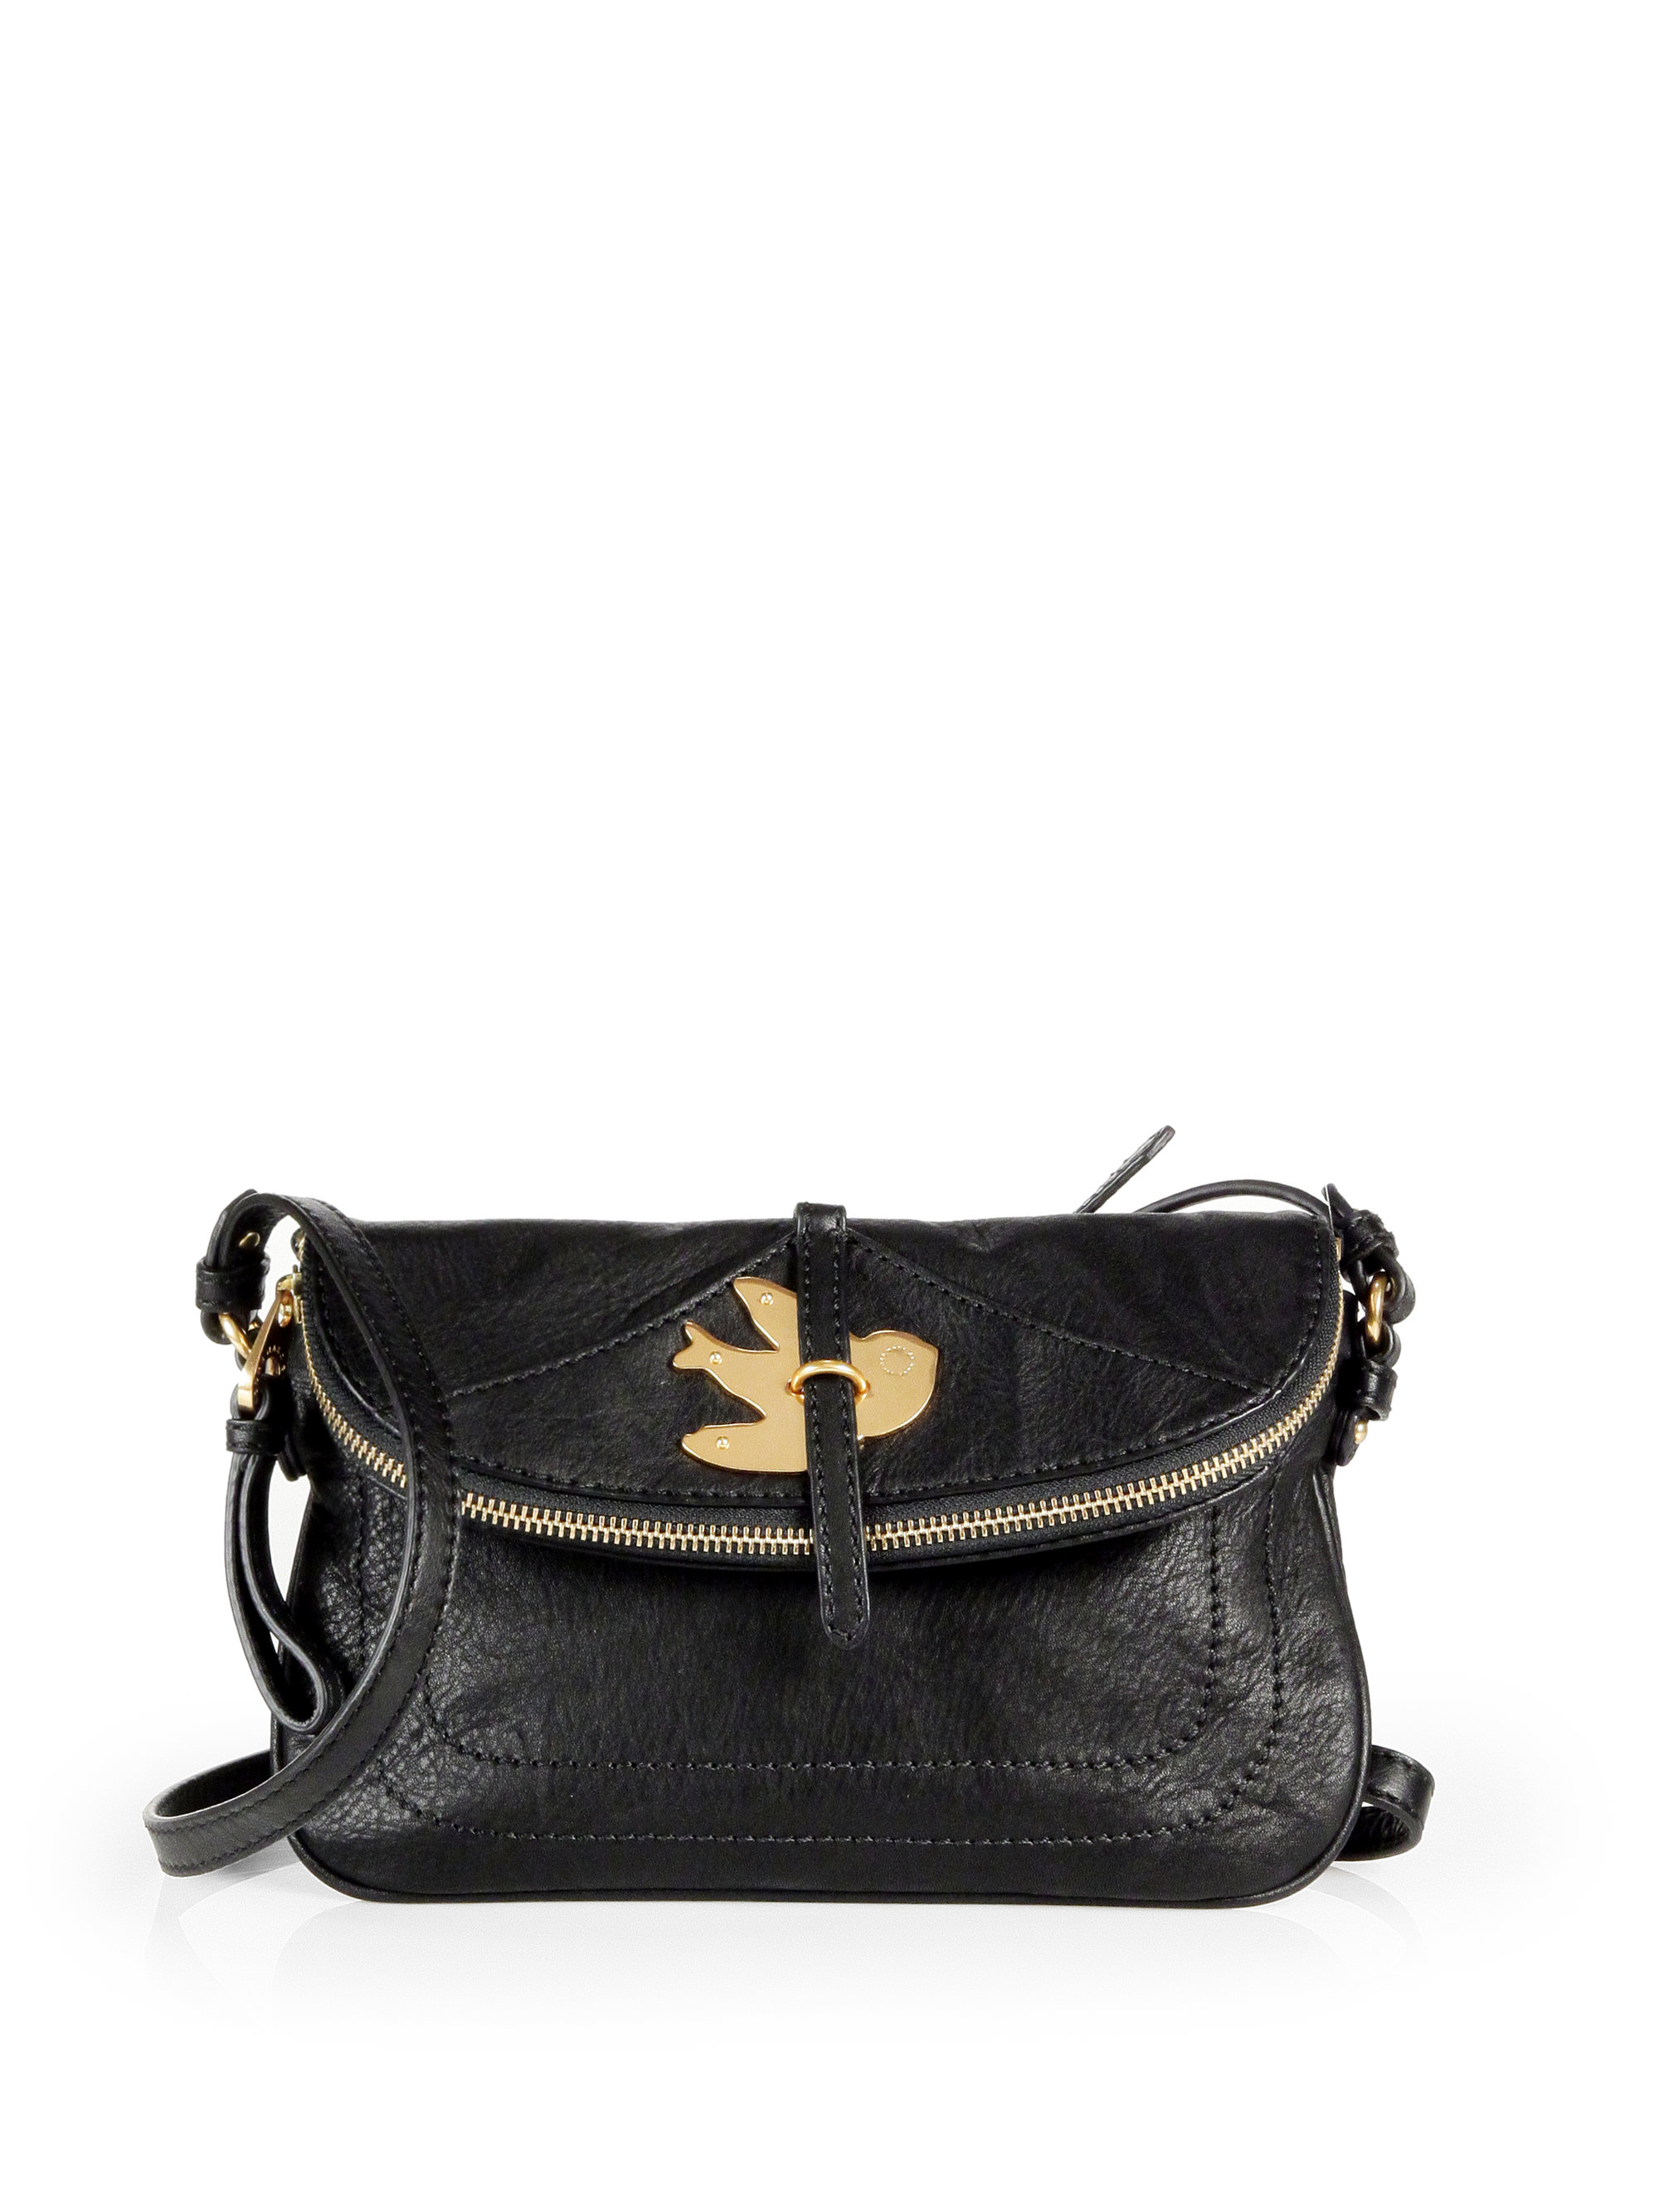 Lyst - Marc By Marc Jacobs Petal To The Metal Percy Bird Leather ... 4dc29bddb0c3